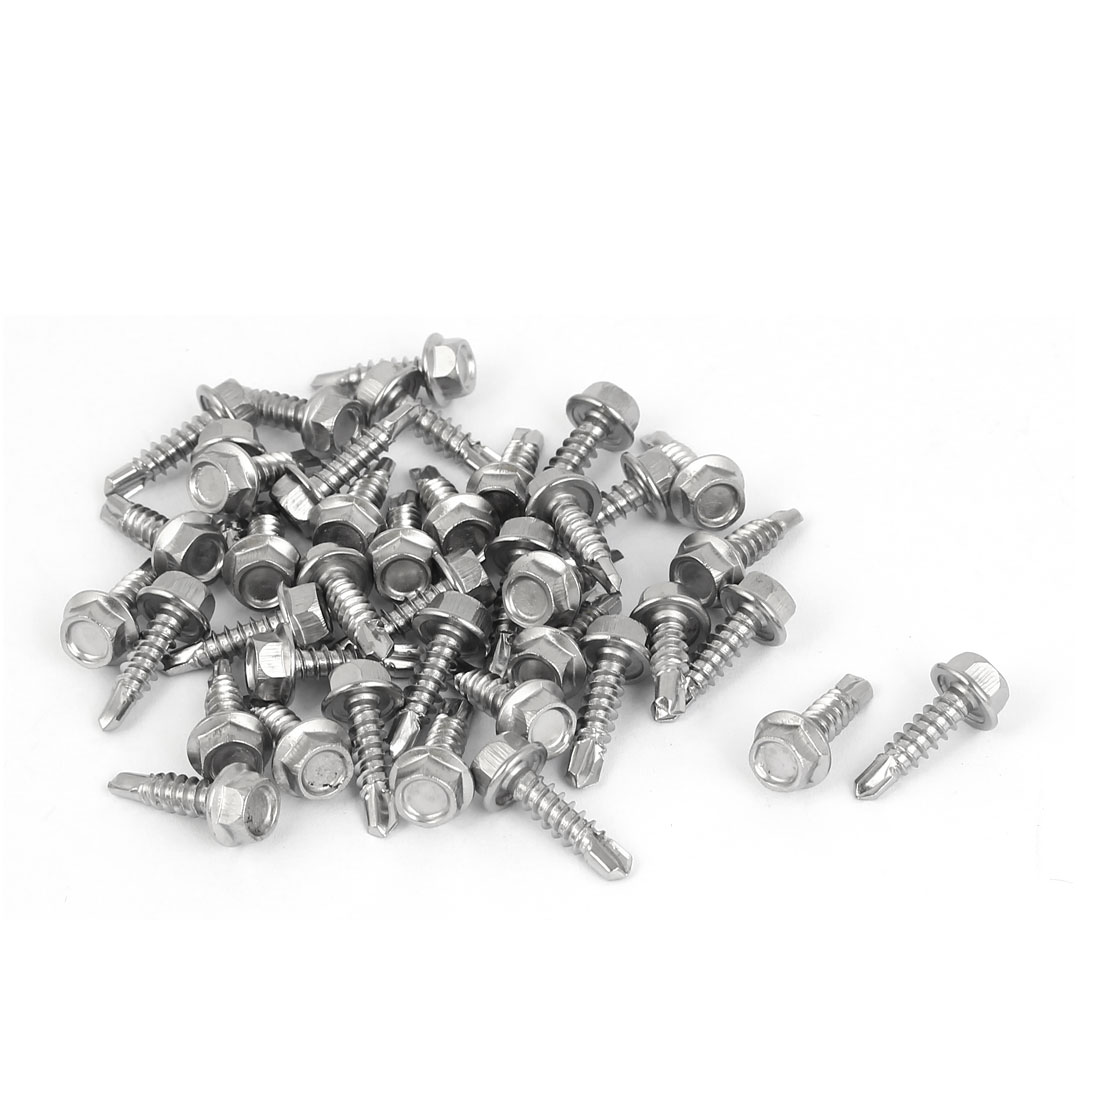 M4.2 x 16mm Male Thread Hex Washer Head Self Drilling Tek Screws 40 Pcs